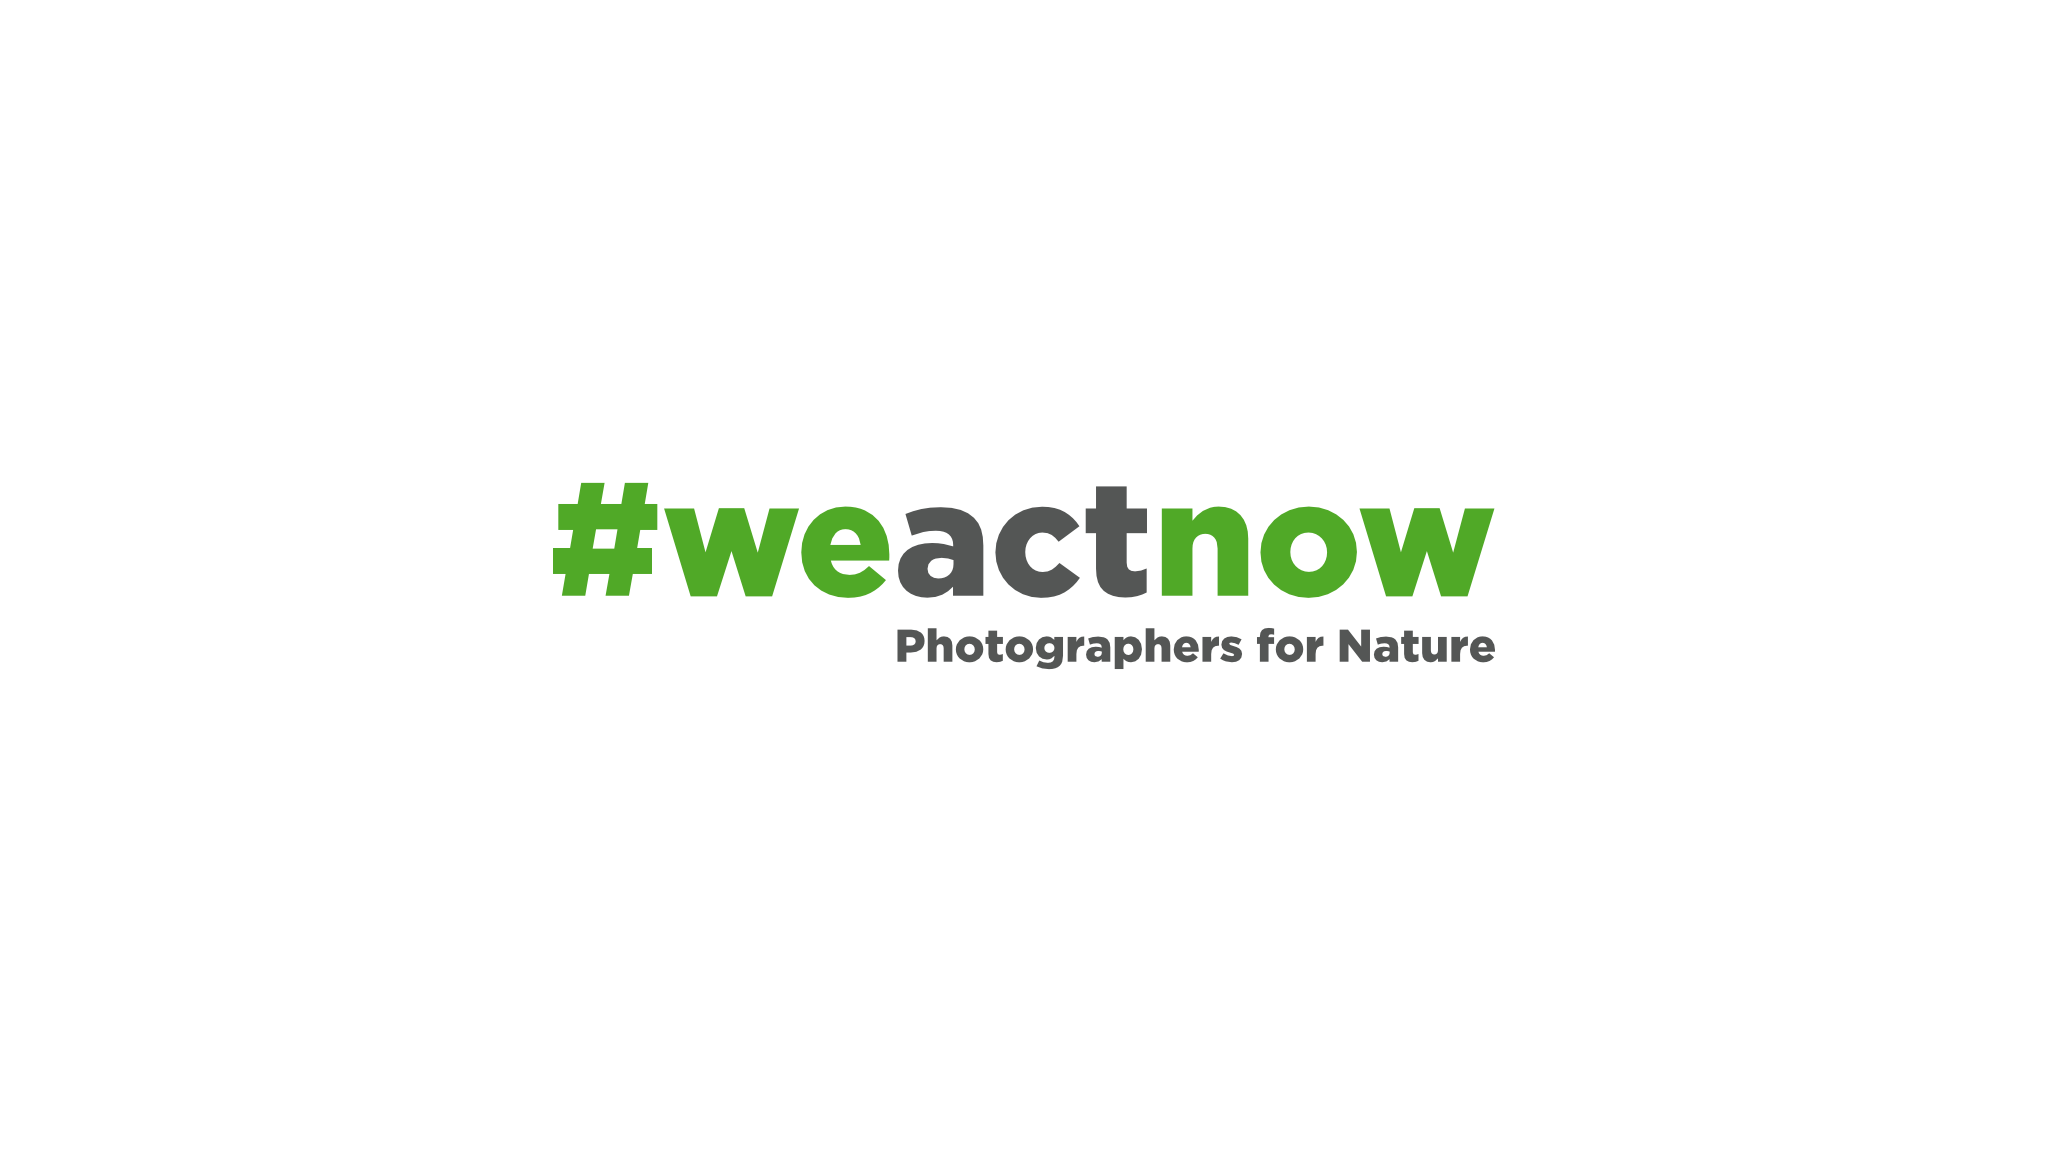 We Act Now - Photographers for Nature